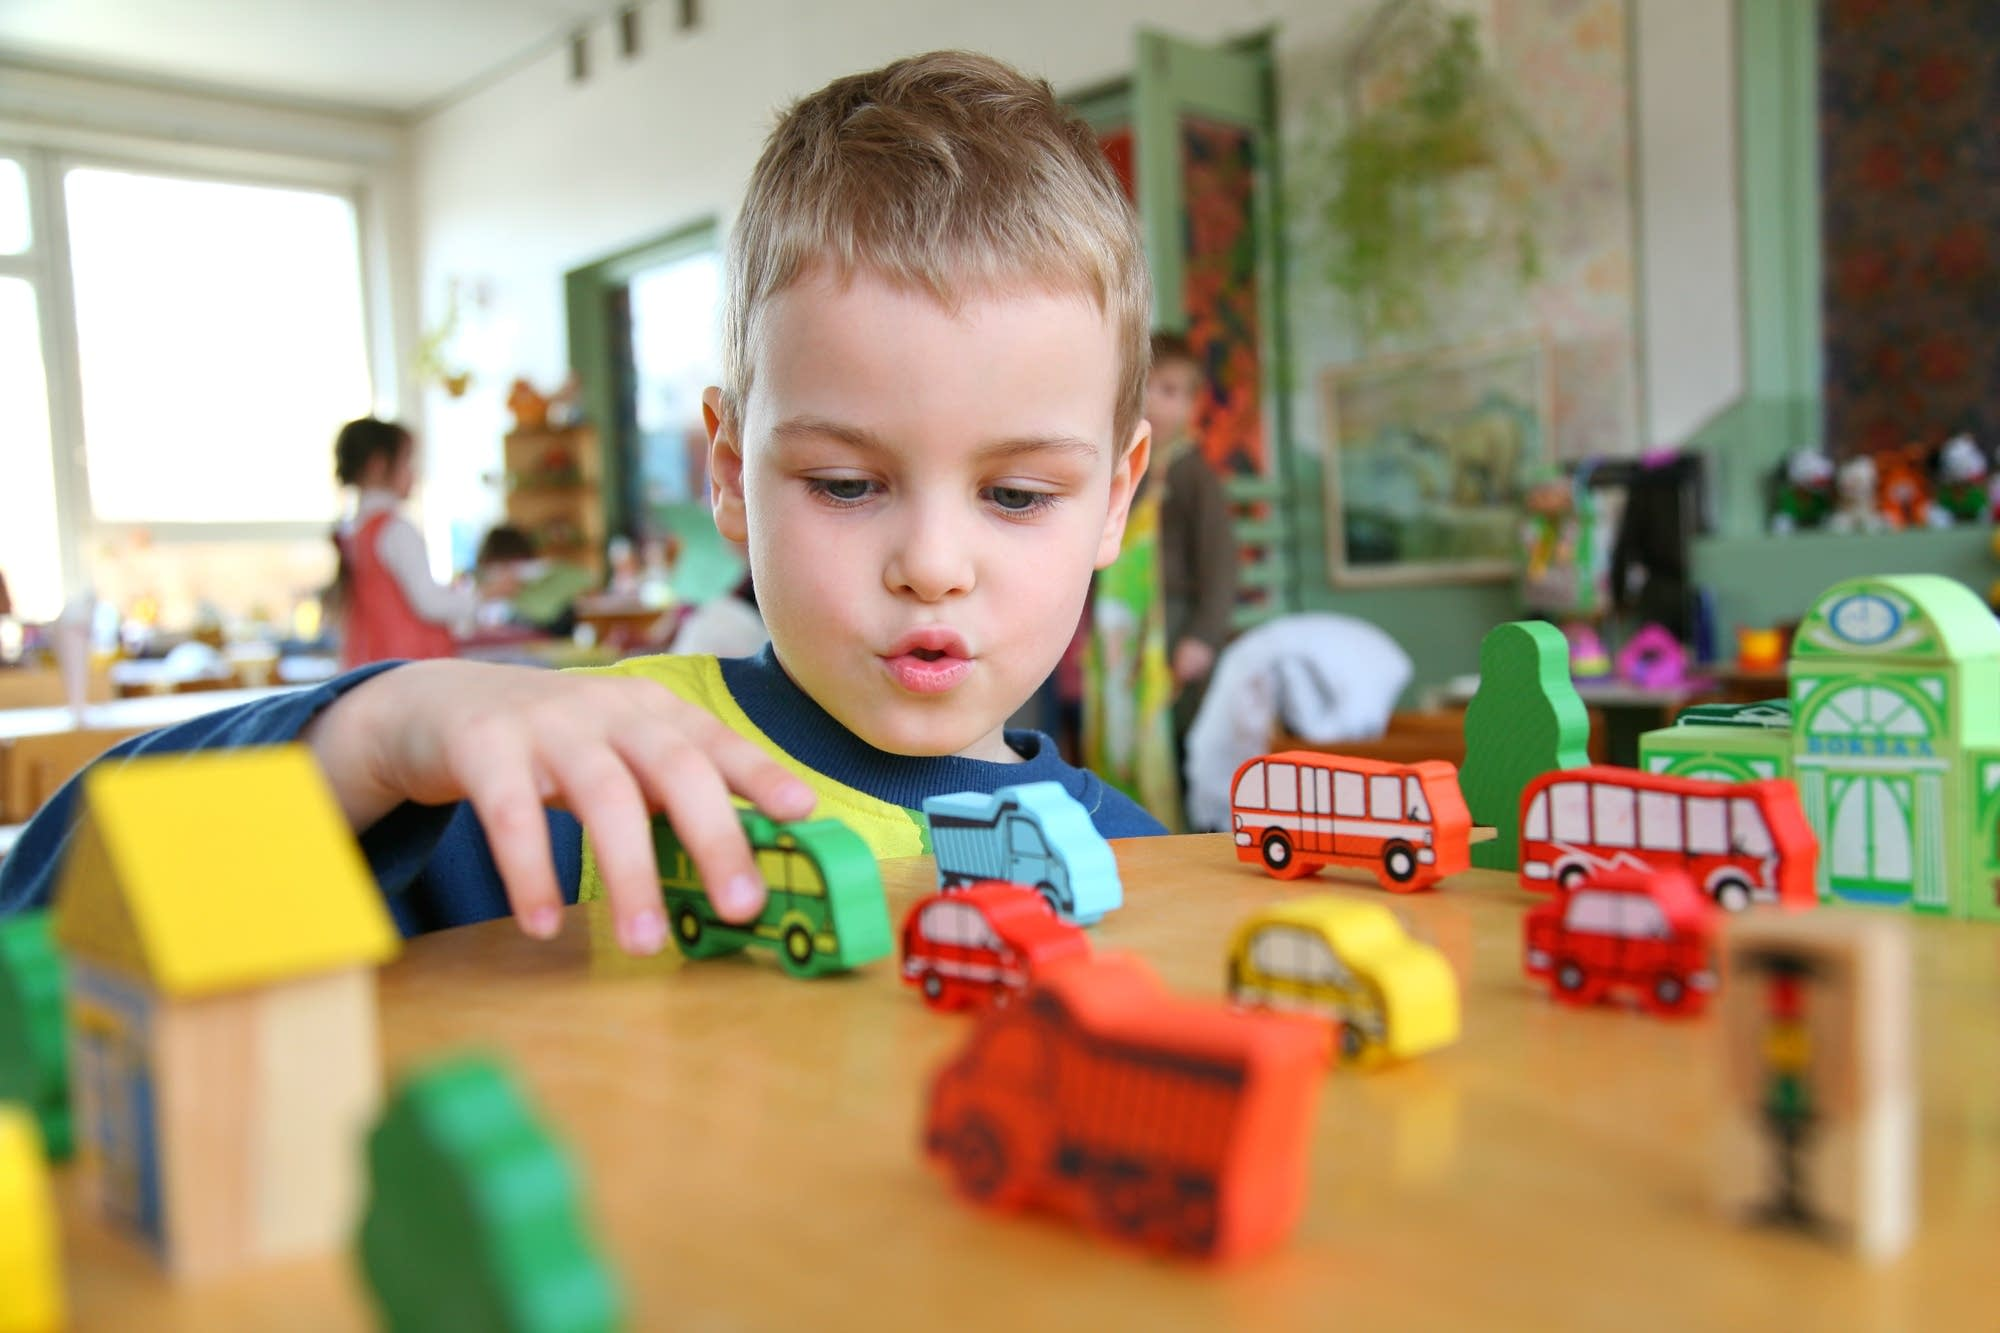 A child plays with toy trucks in kindergarten.